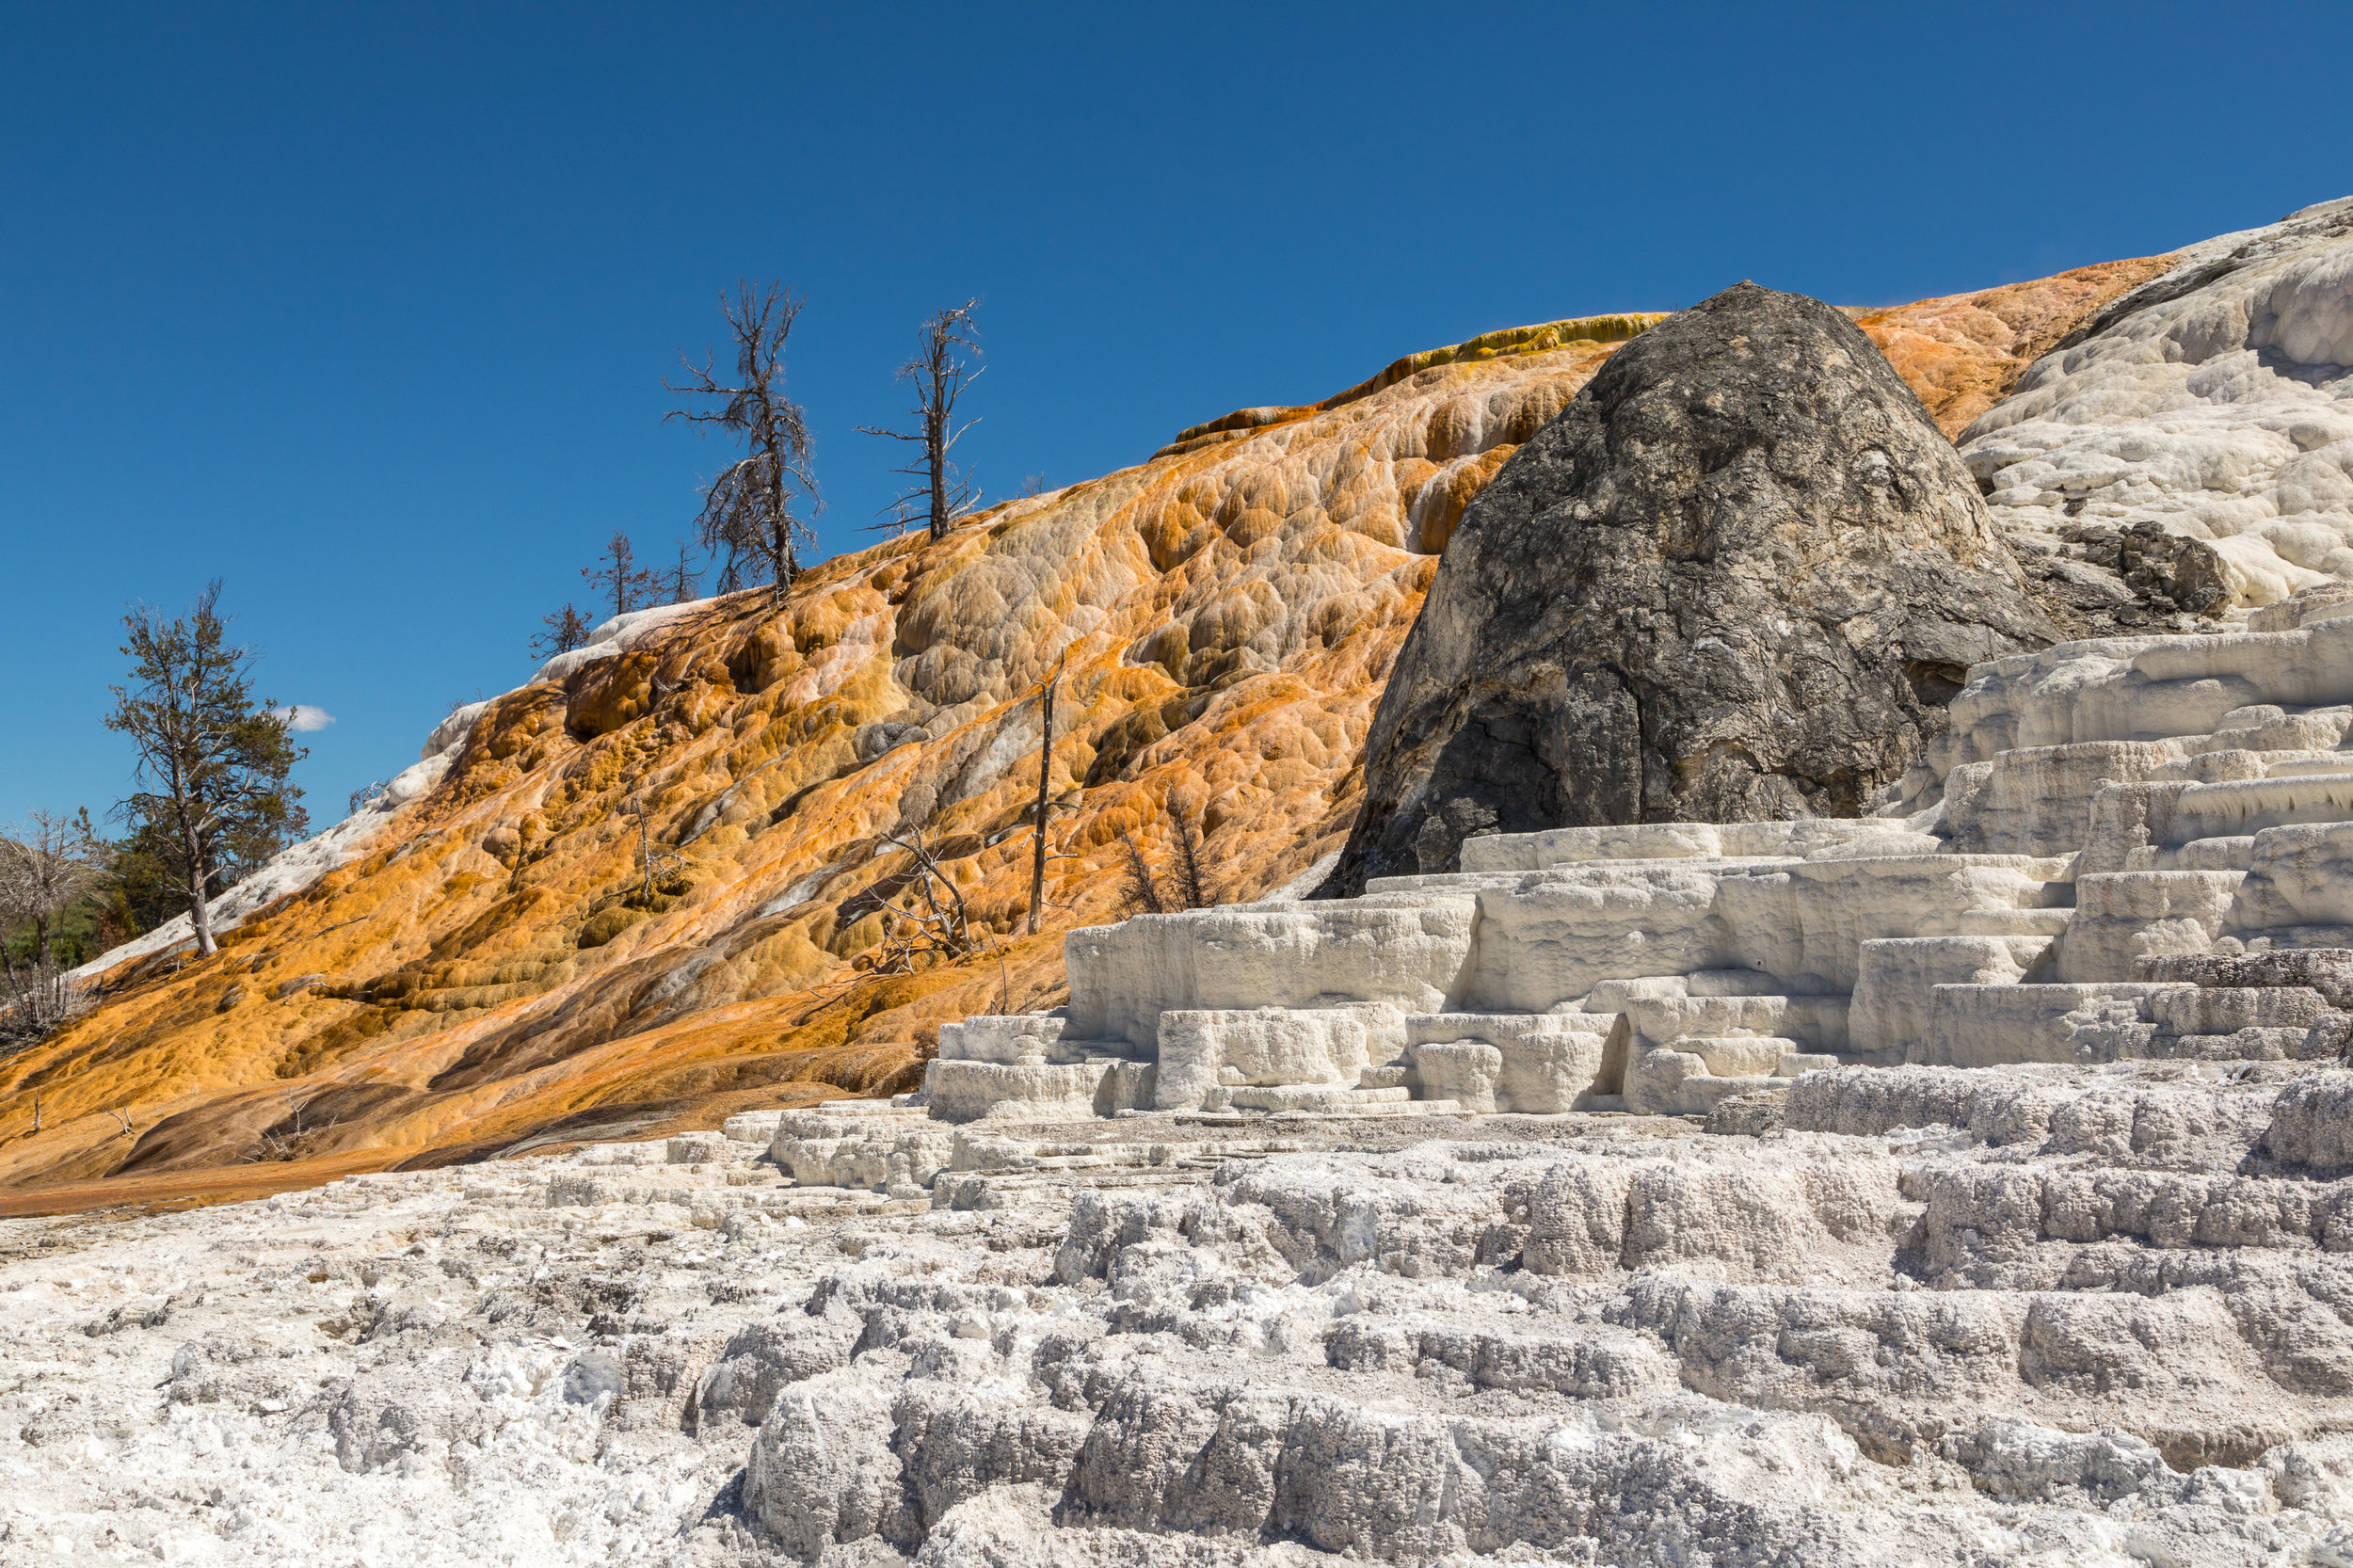 Mammoth Hot Springs, Yellowstone National Park, Image # 7549